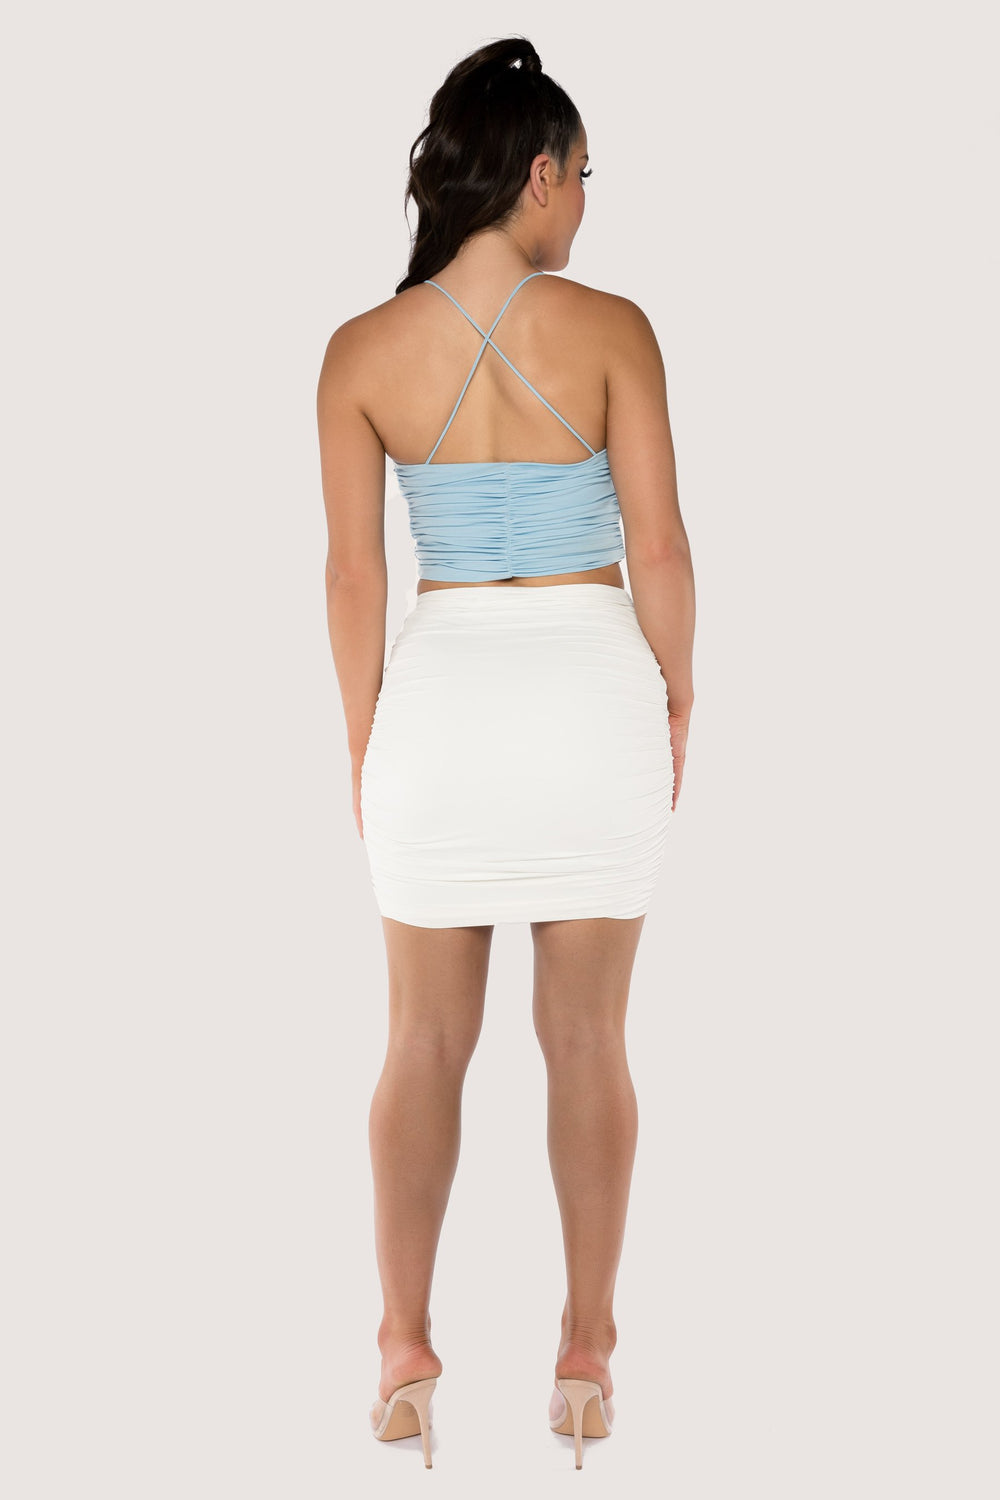 Kaela Ruched Front Tie Up Crop Top - Dusty Blue - MESHKI